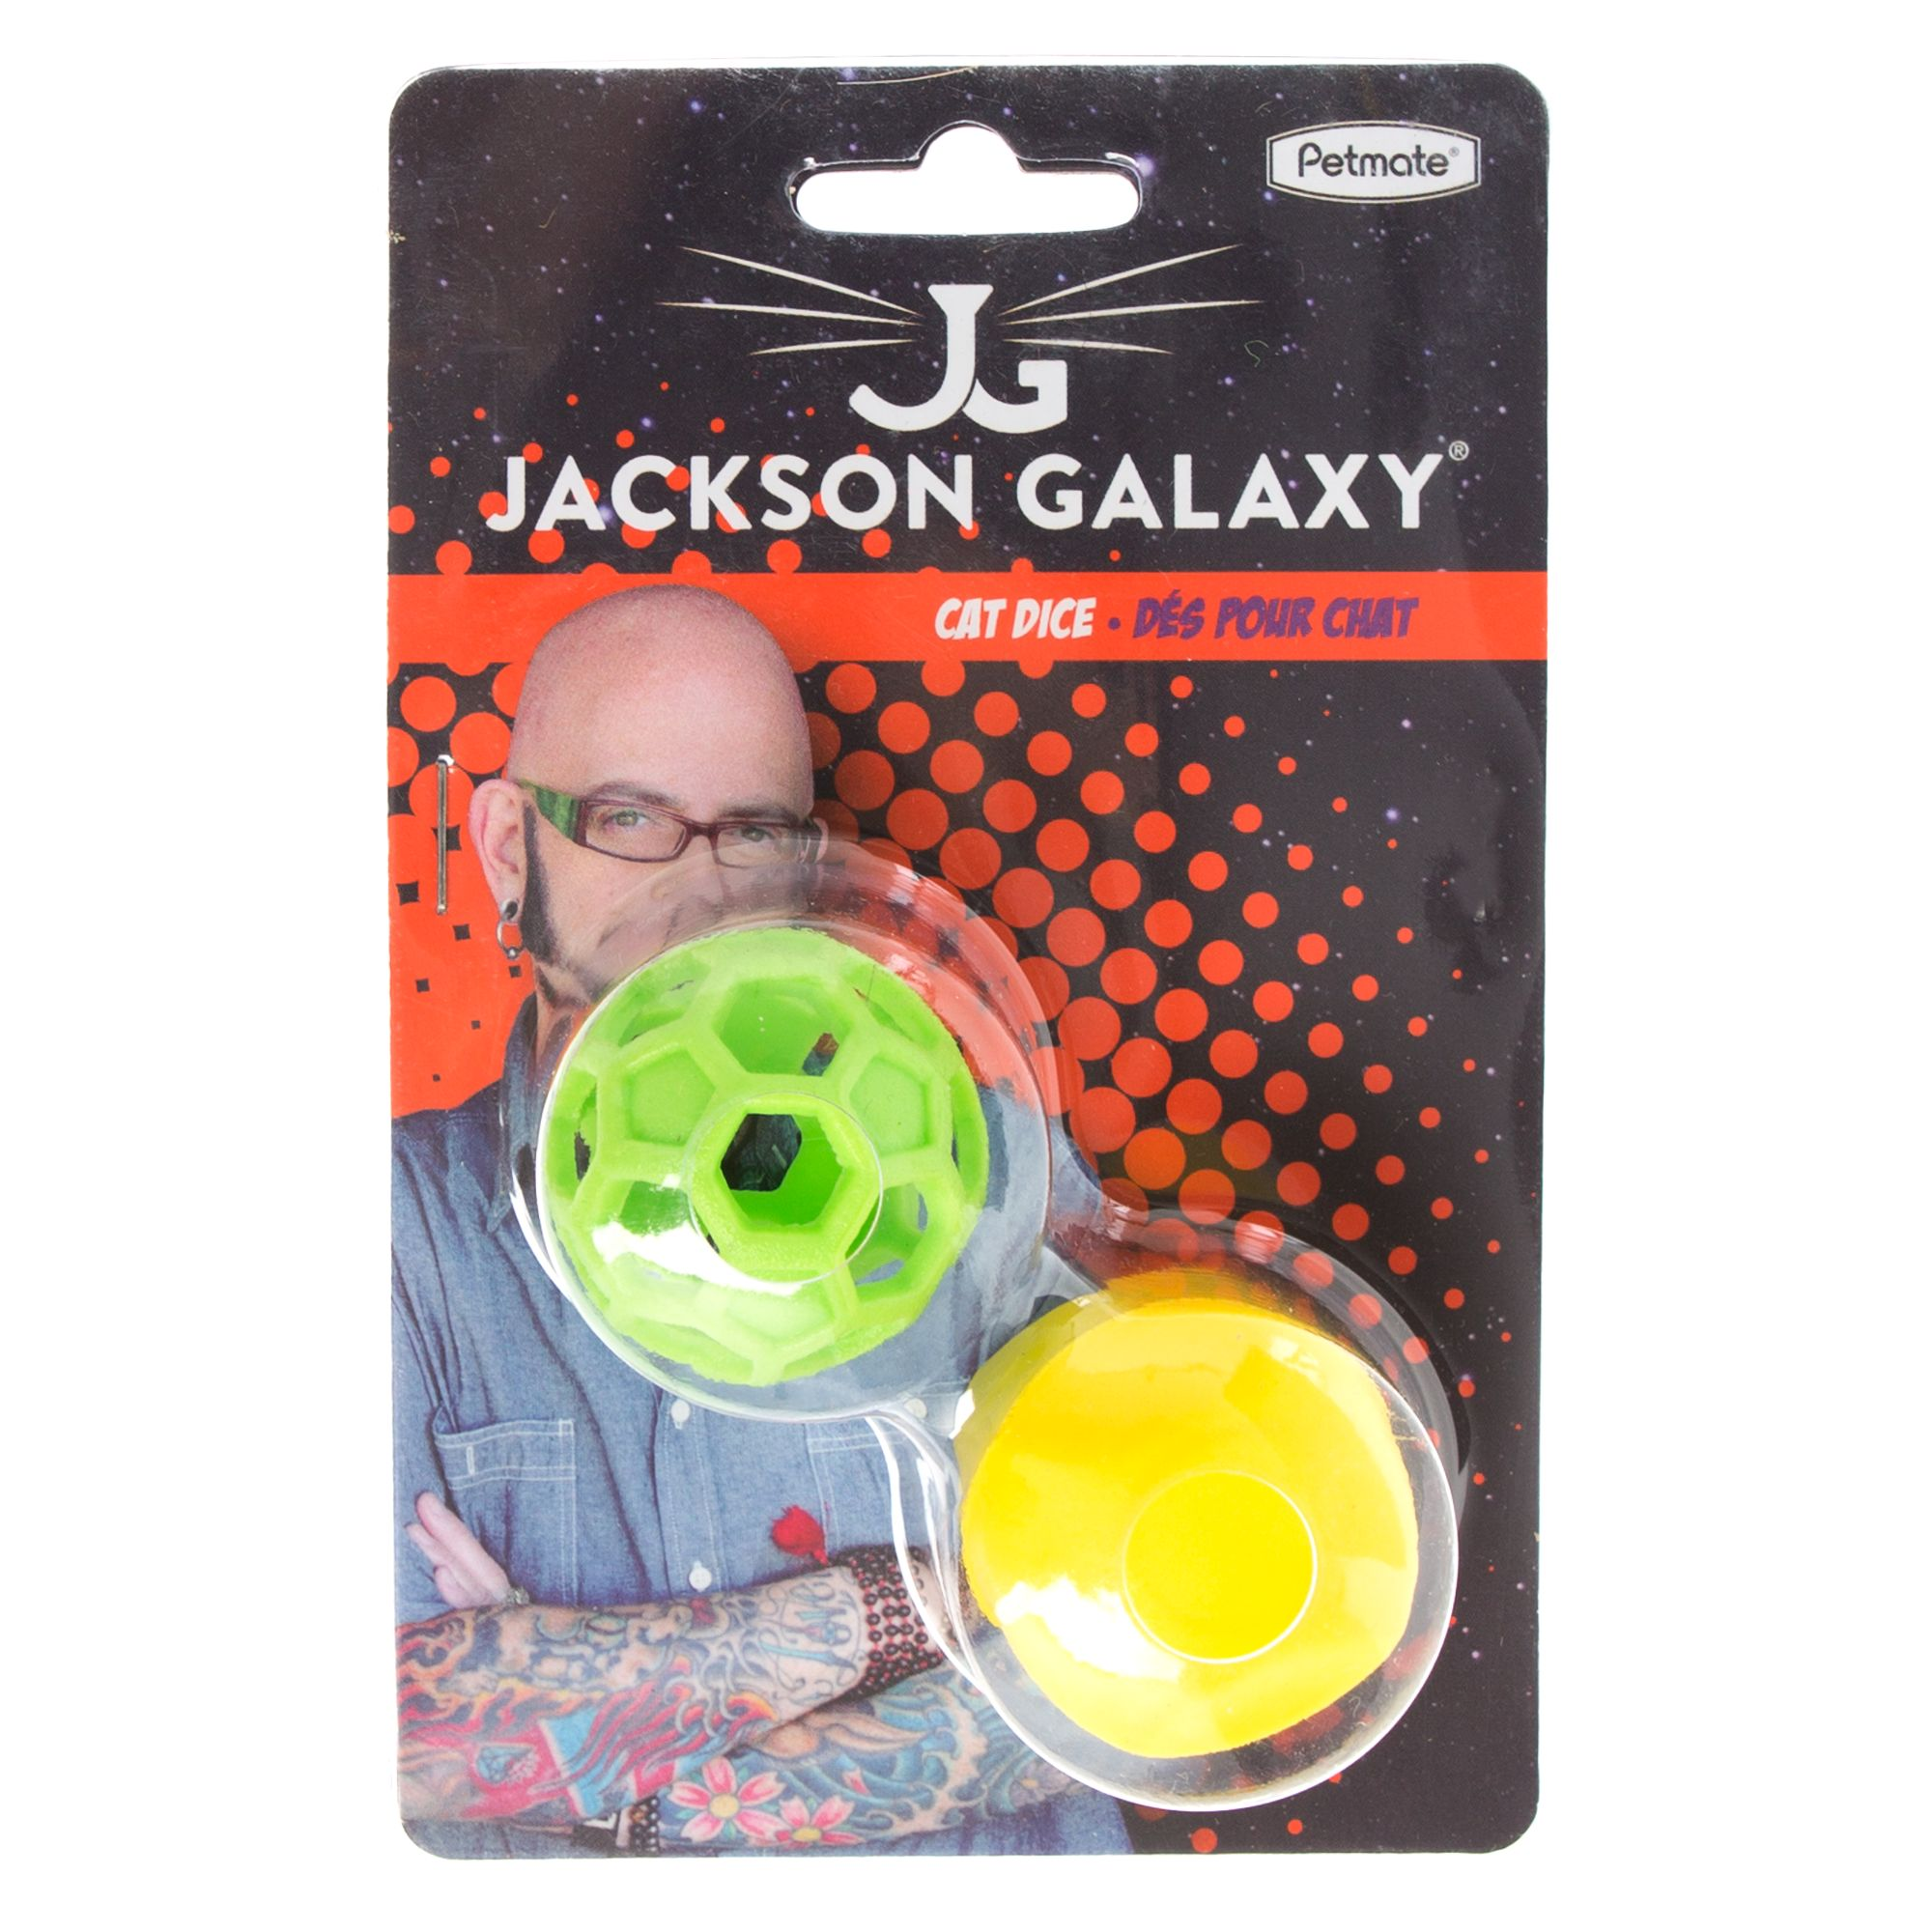 Jackson Galaxy Dice and Ball Cat Toy 5264469